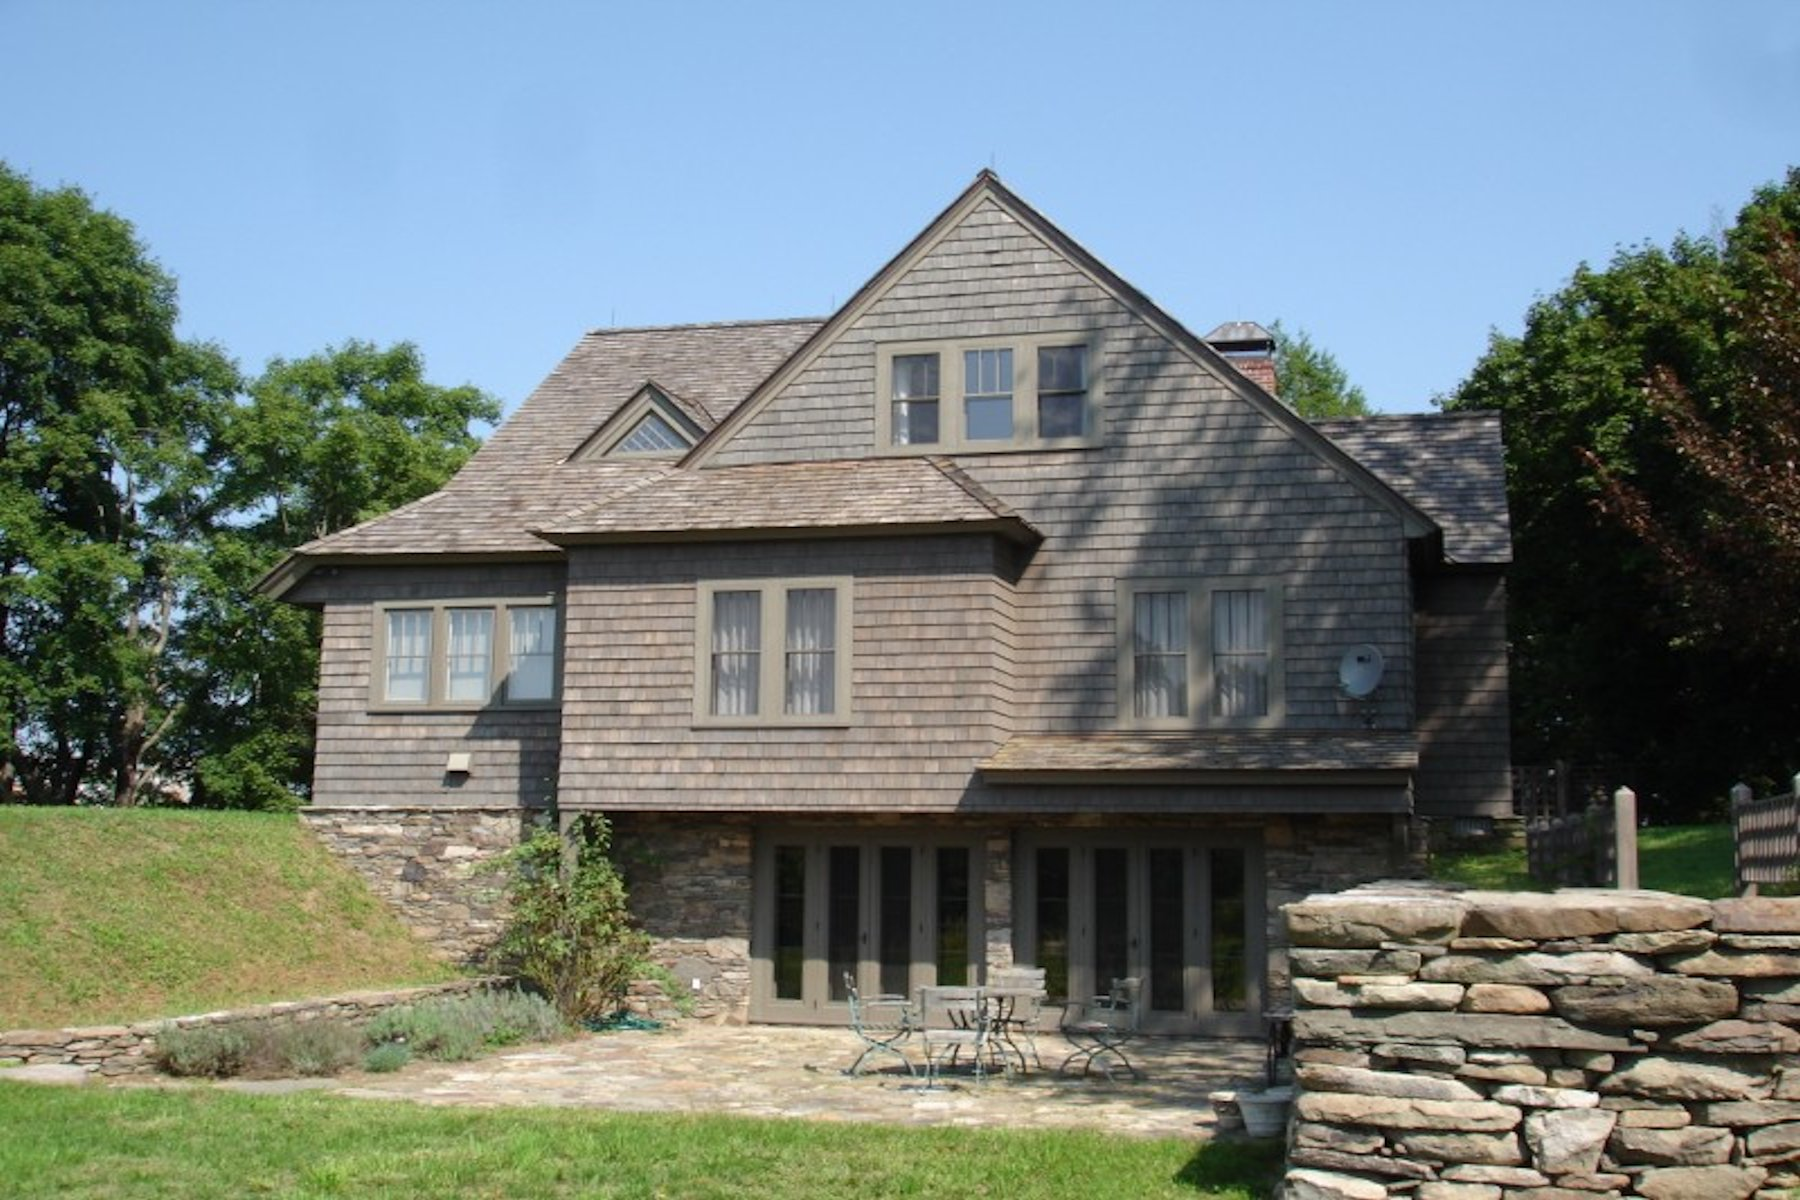 Additional photo for property listing at Millbrook Cottage 359 Fowler Road Millbrook, New York 12545 United States